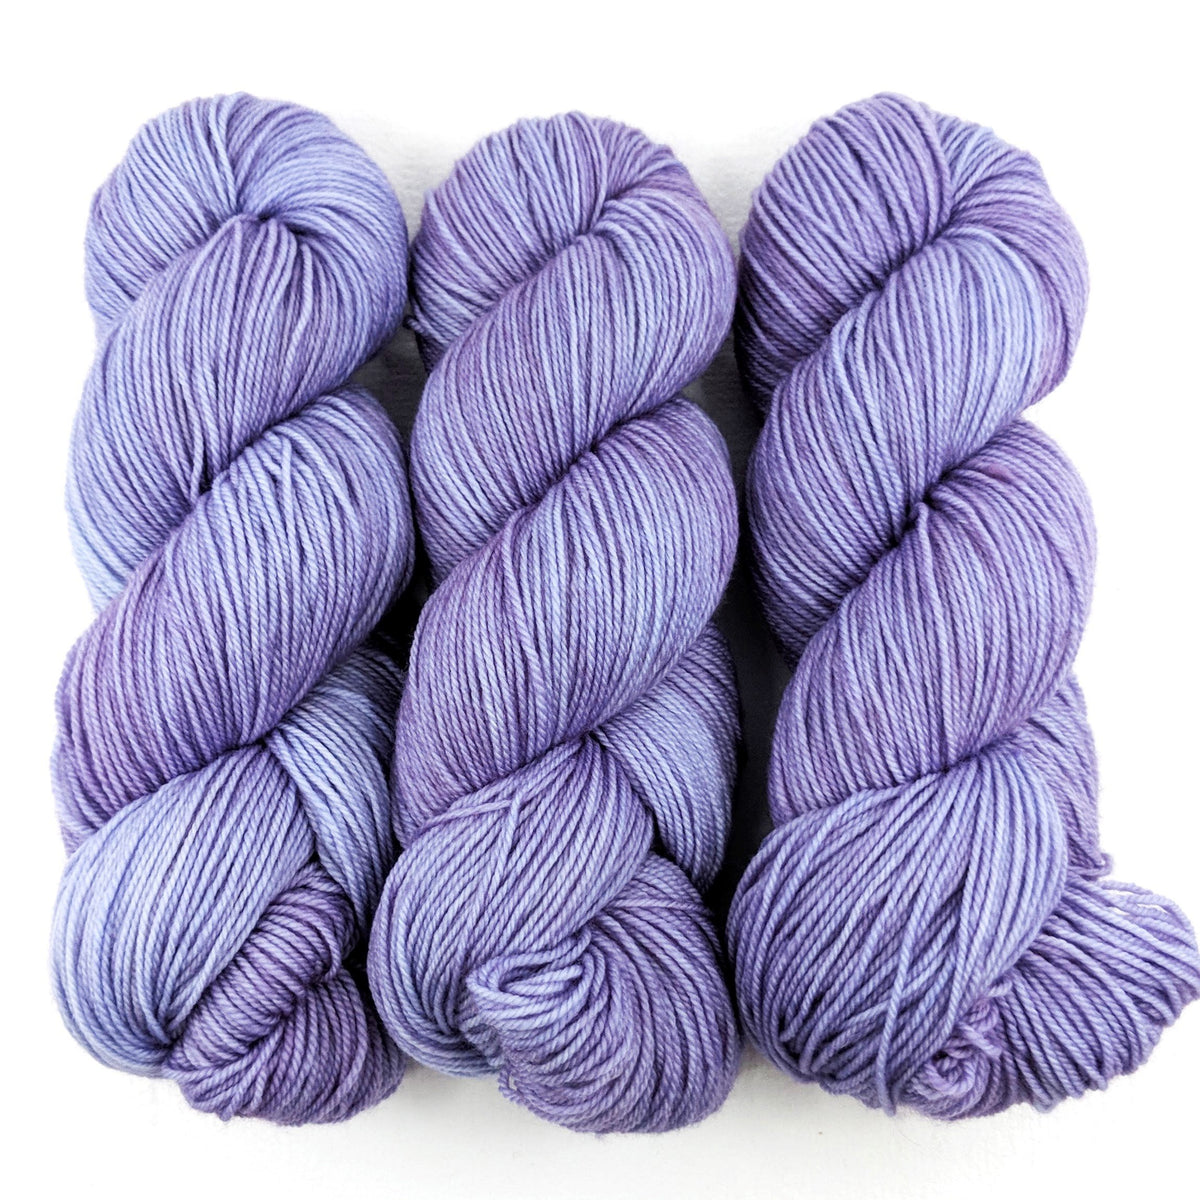 English Lavender - Nettle Soft DK - Dyed Stock